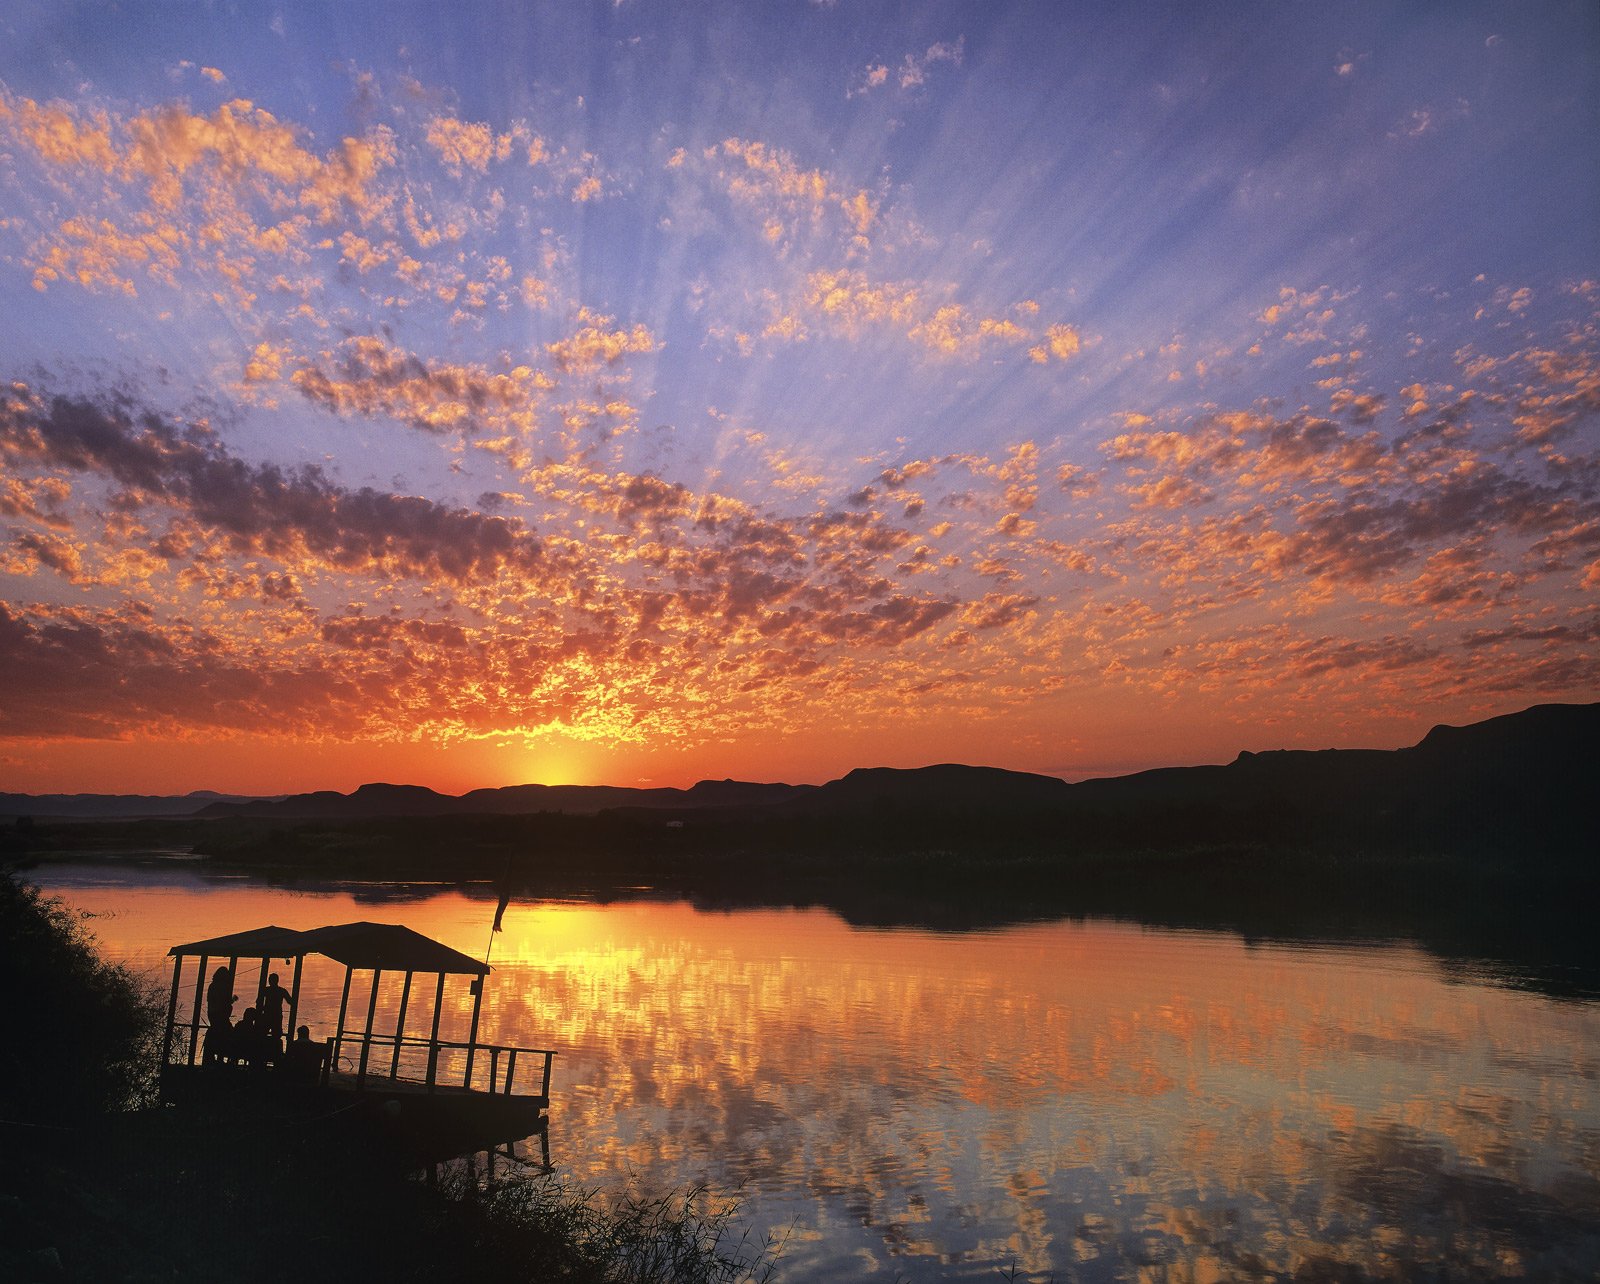 Under African Skies, Orange River, South Africa, Africa, Namibia, evening, sunset, silhouetted, pontoon, campsite, photo